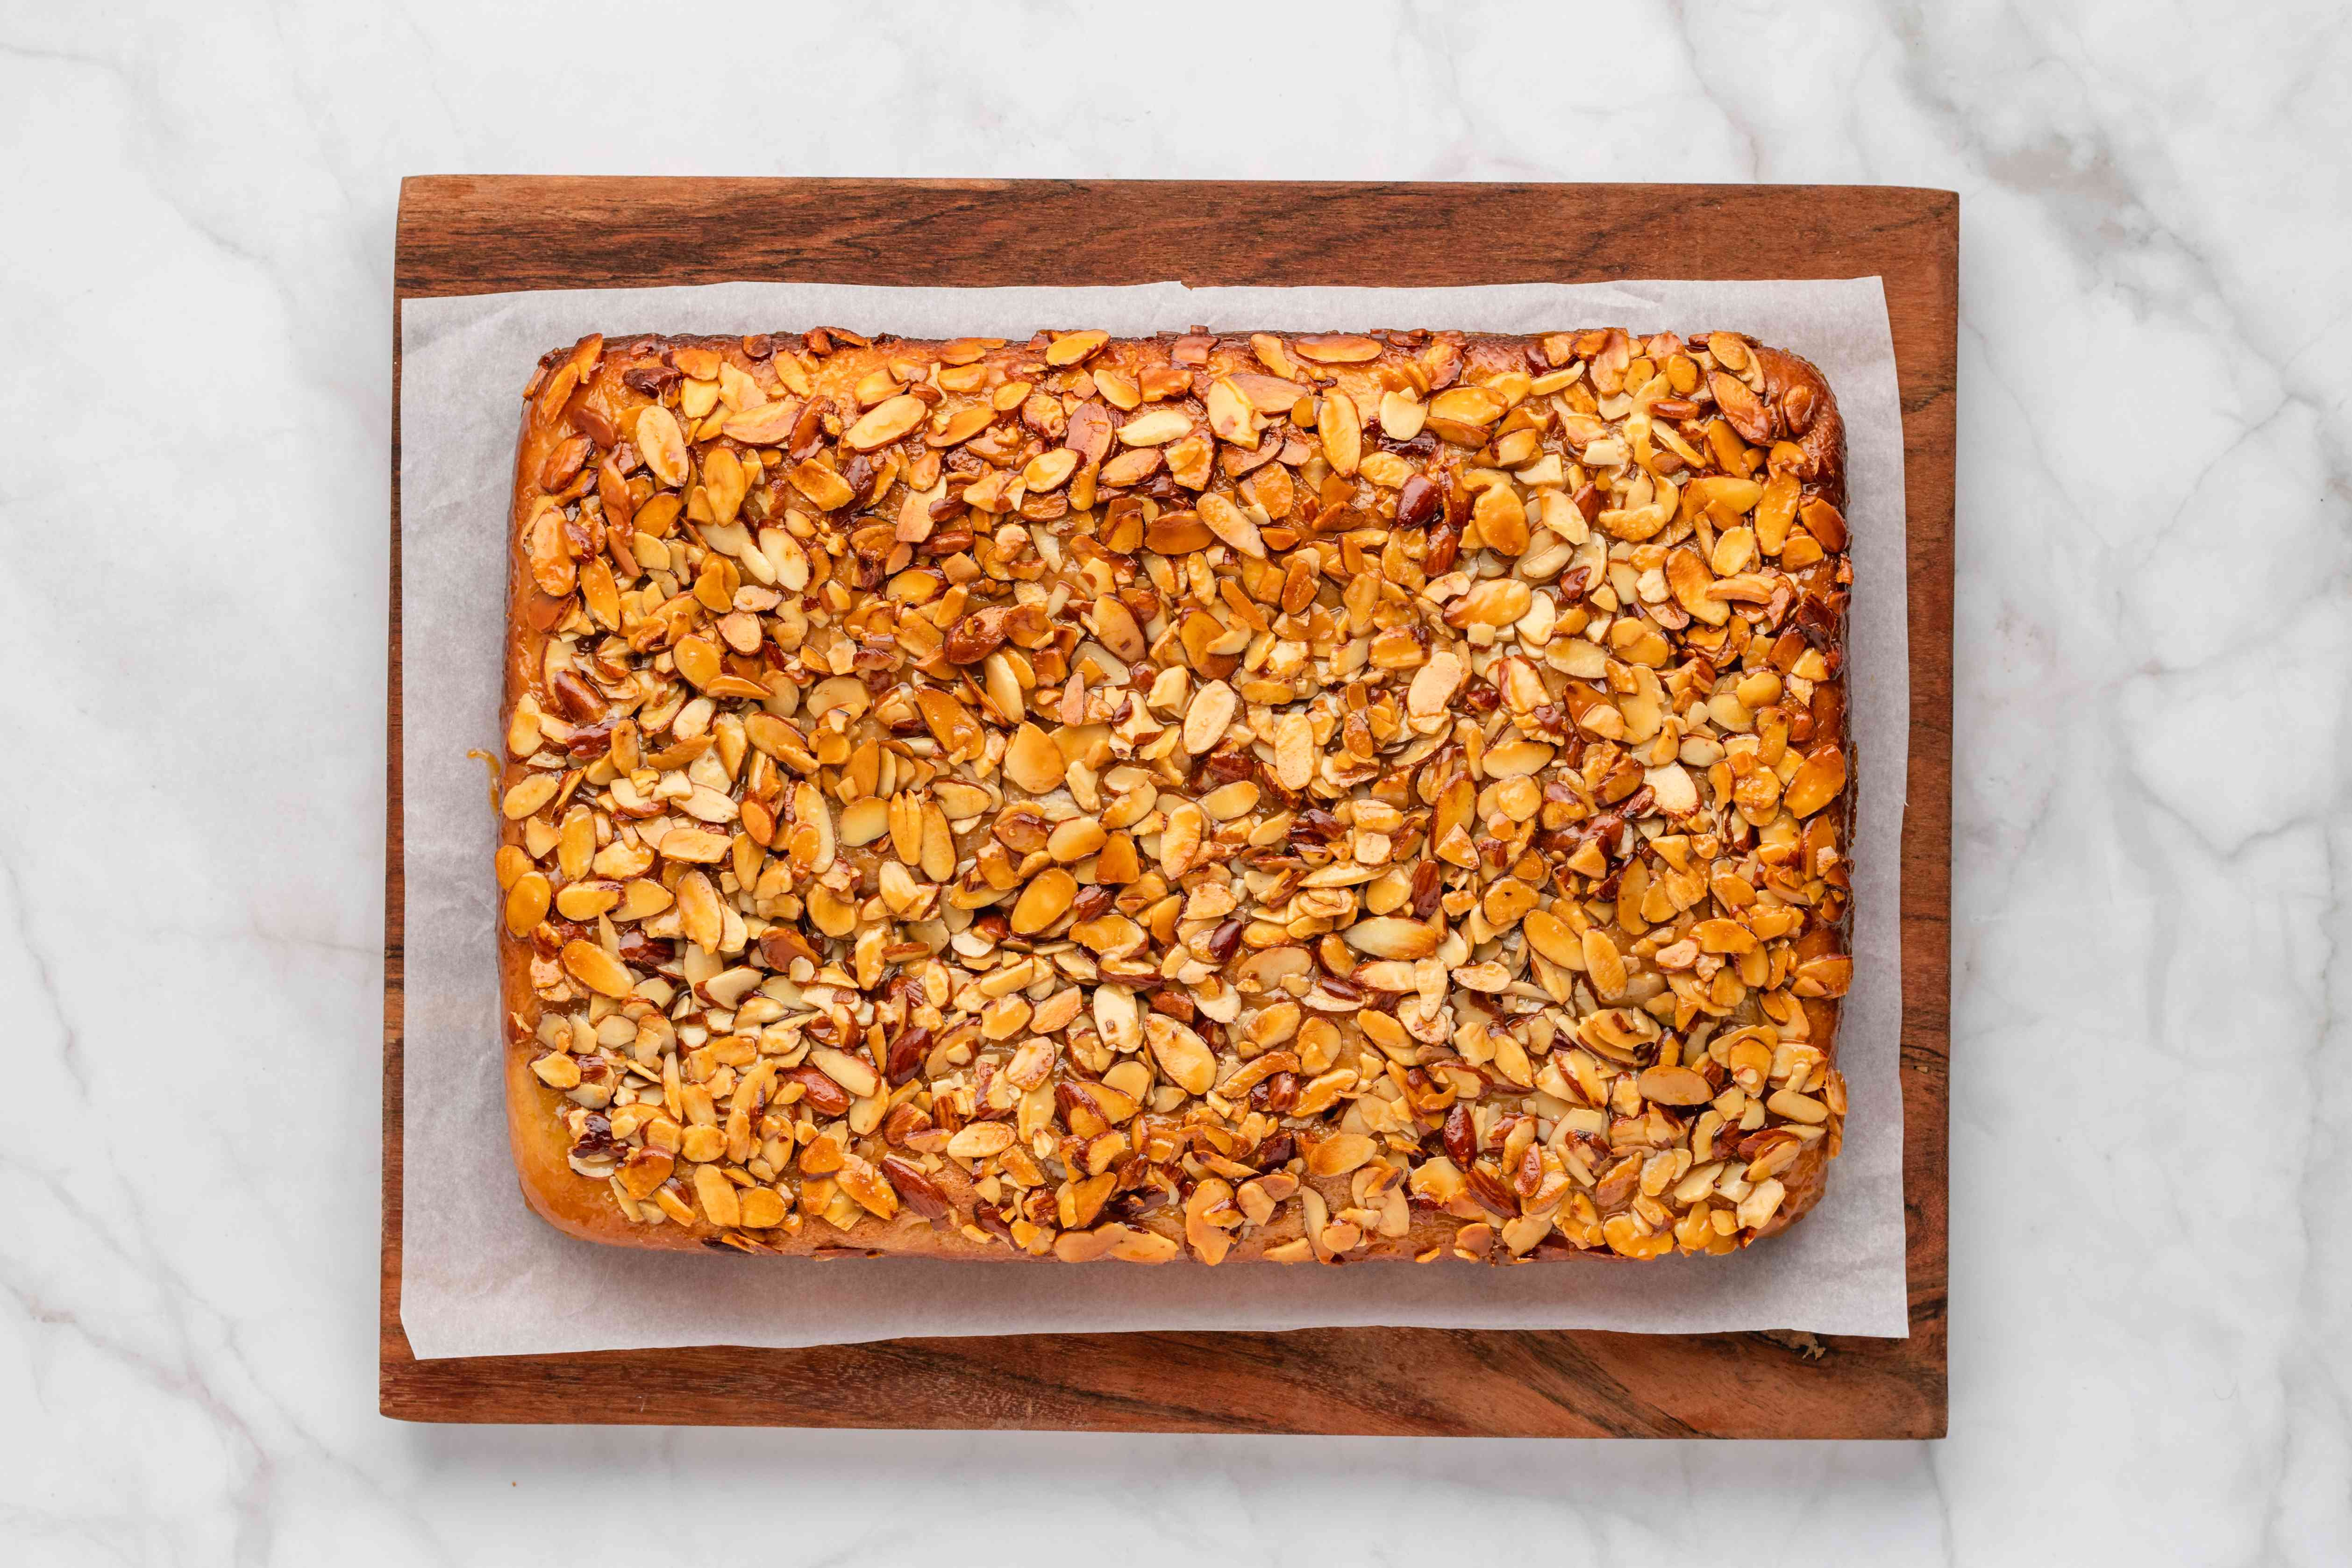 baked cake with almond topping on top